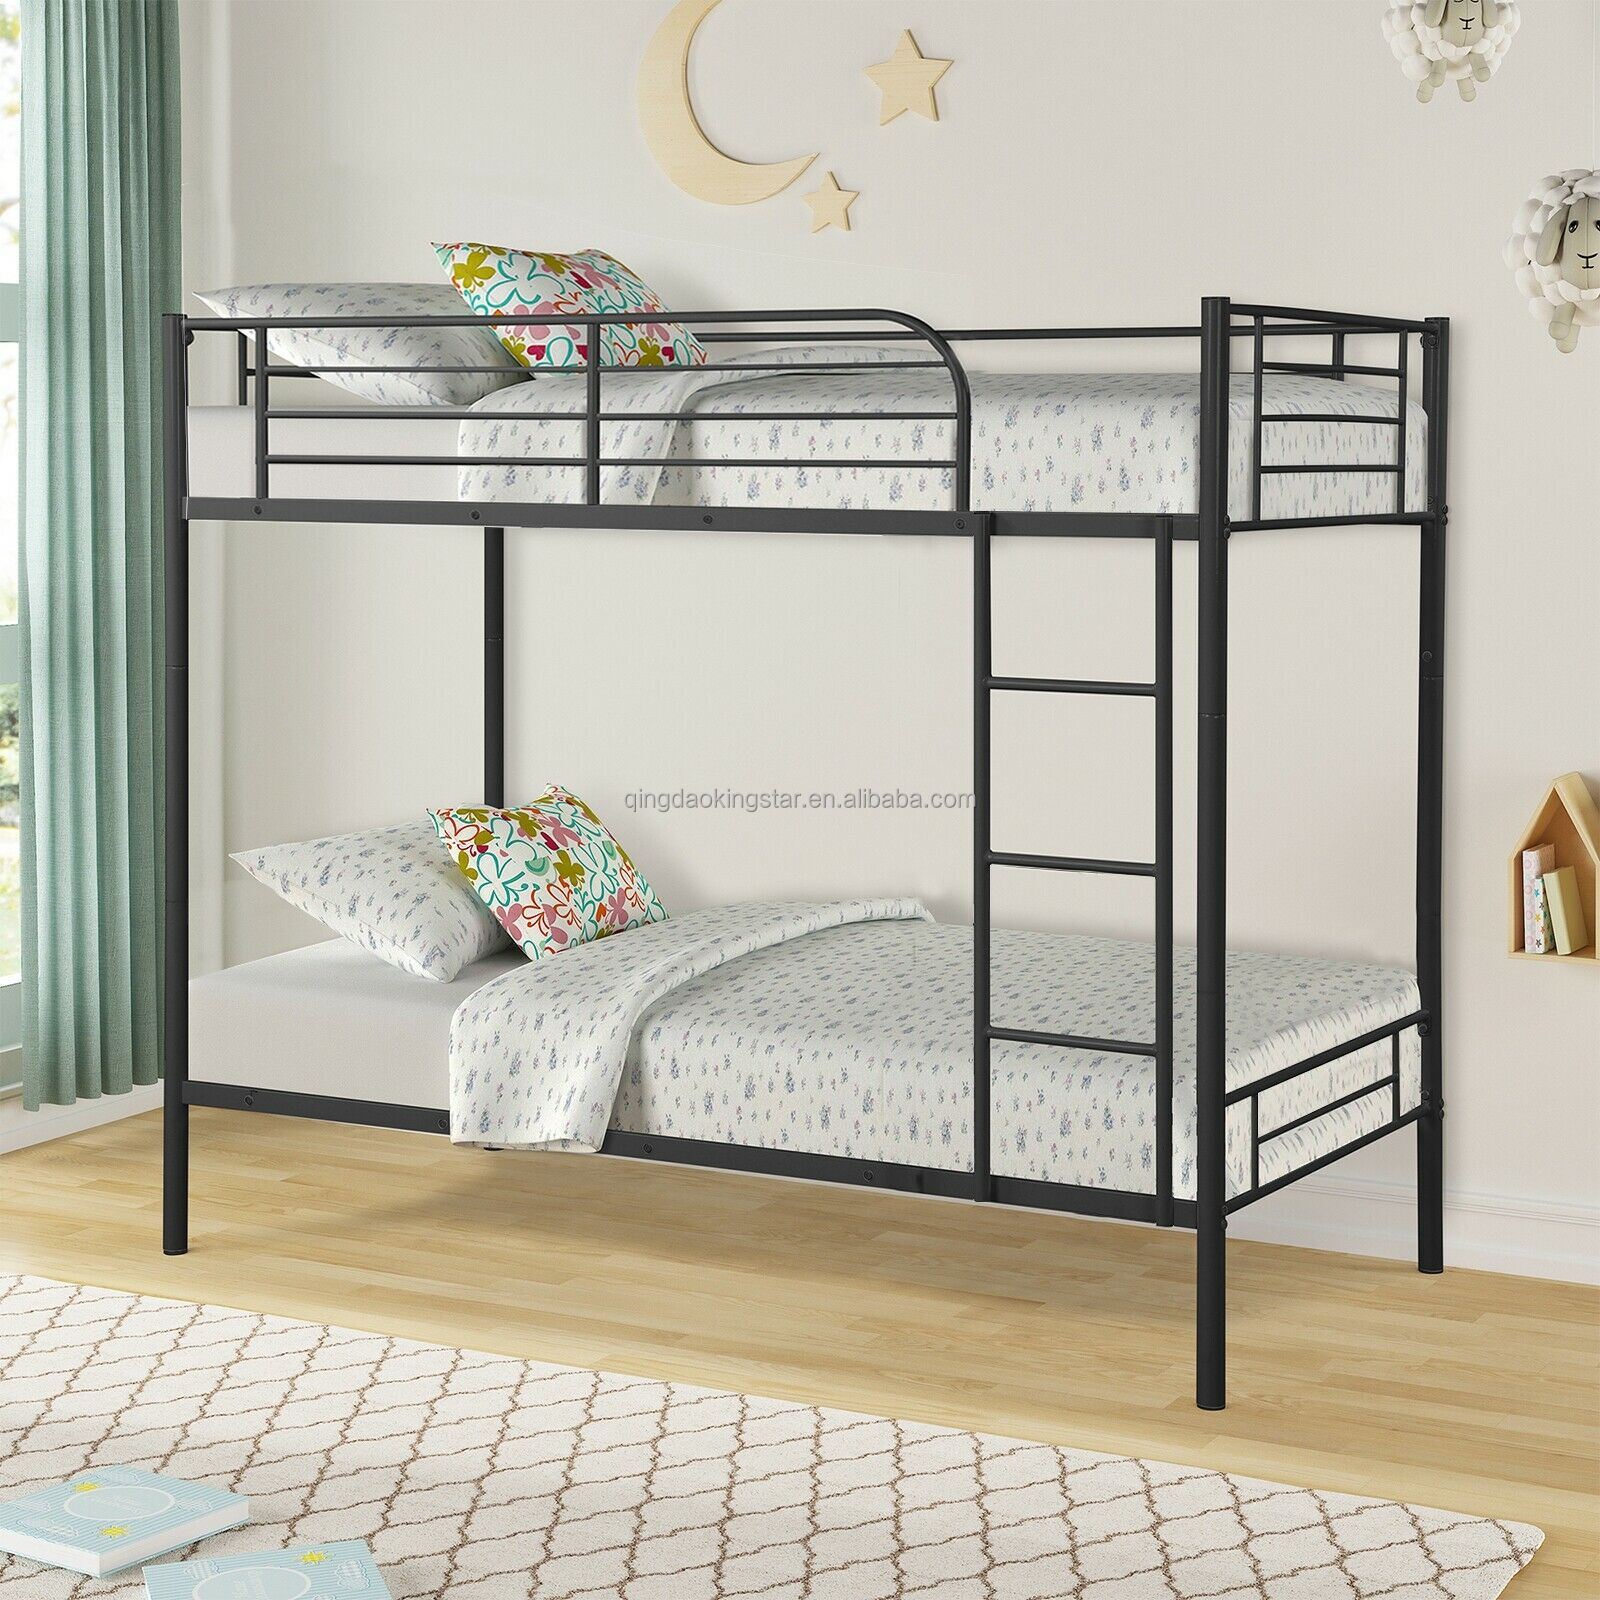 Uk Hot Sell Modern Kids Single Over Single Metal Bunk Beds Buy Bunk Beds Kids Bed Metal Bed Product On Alibaba Com